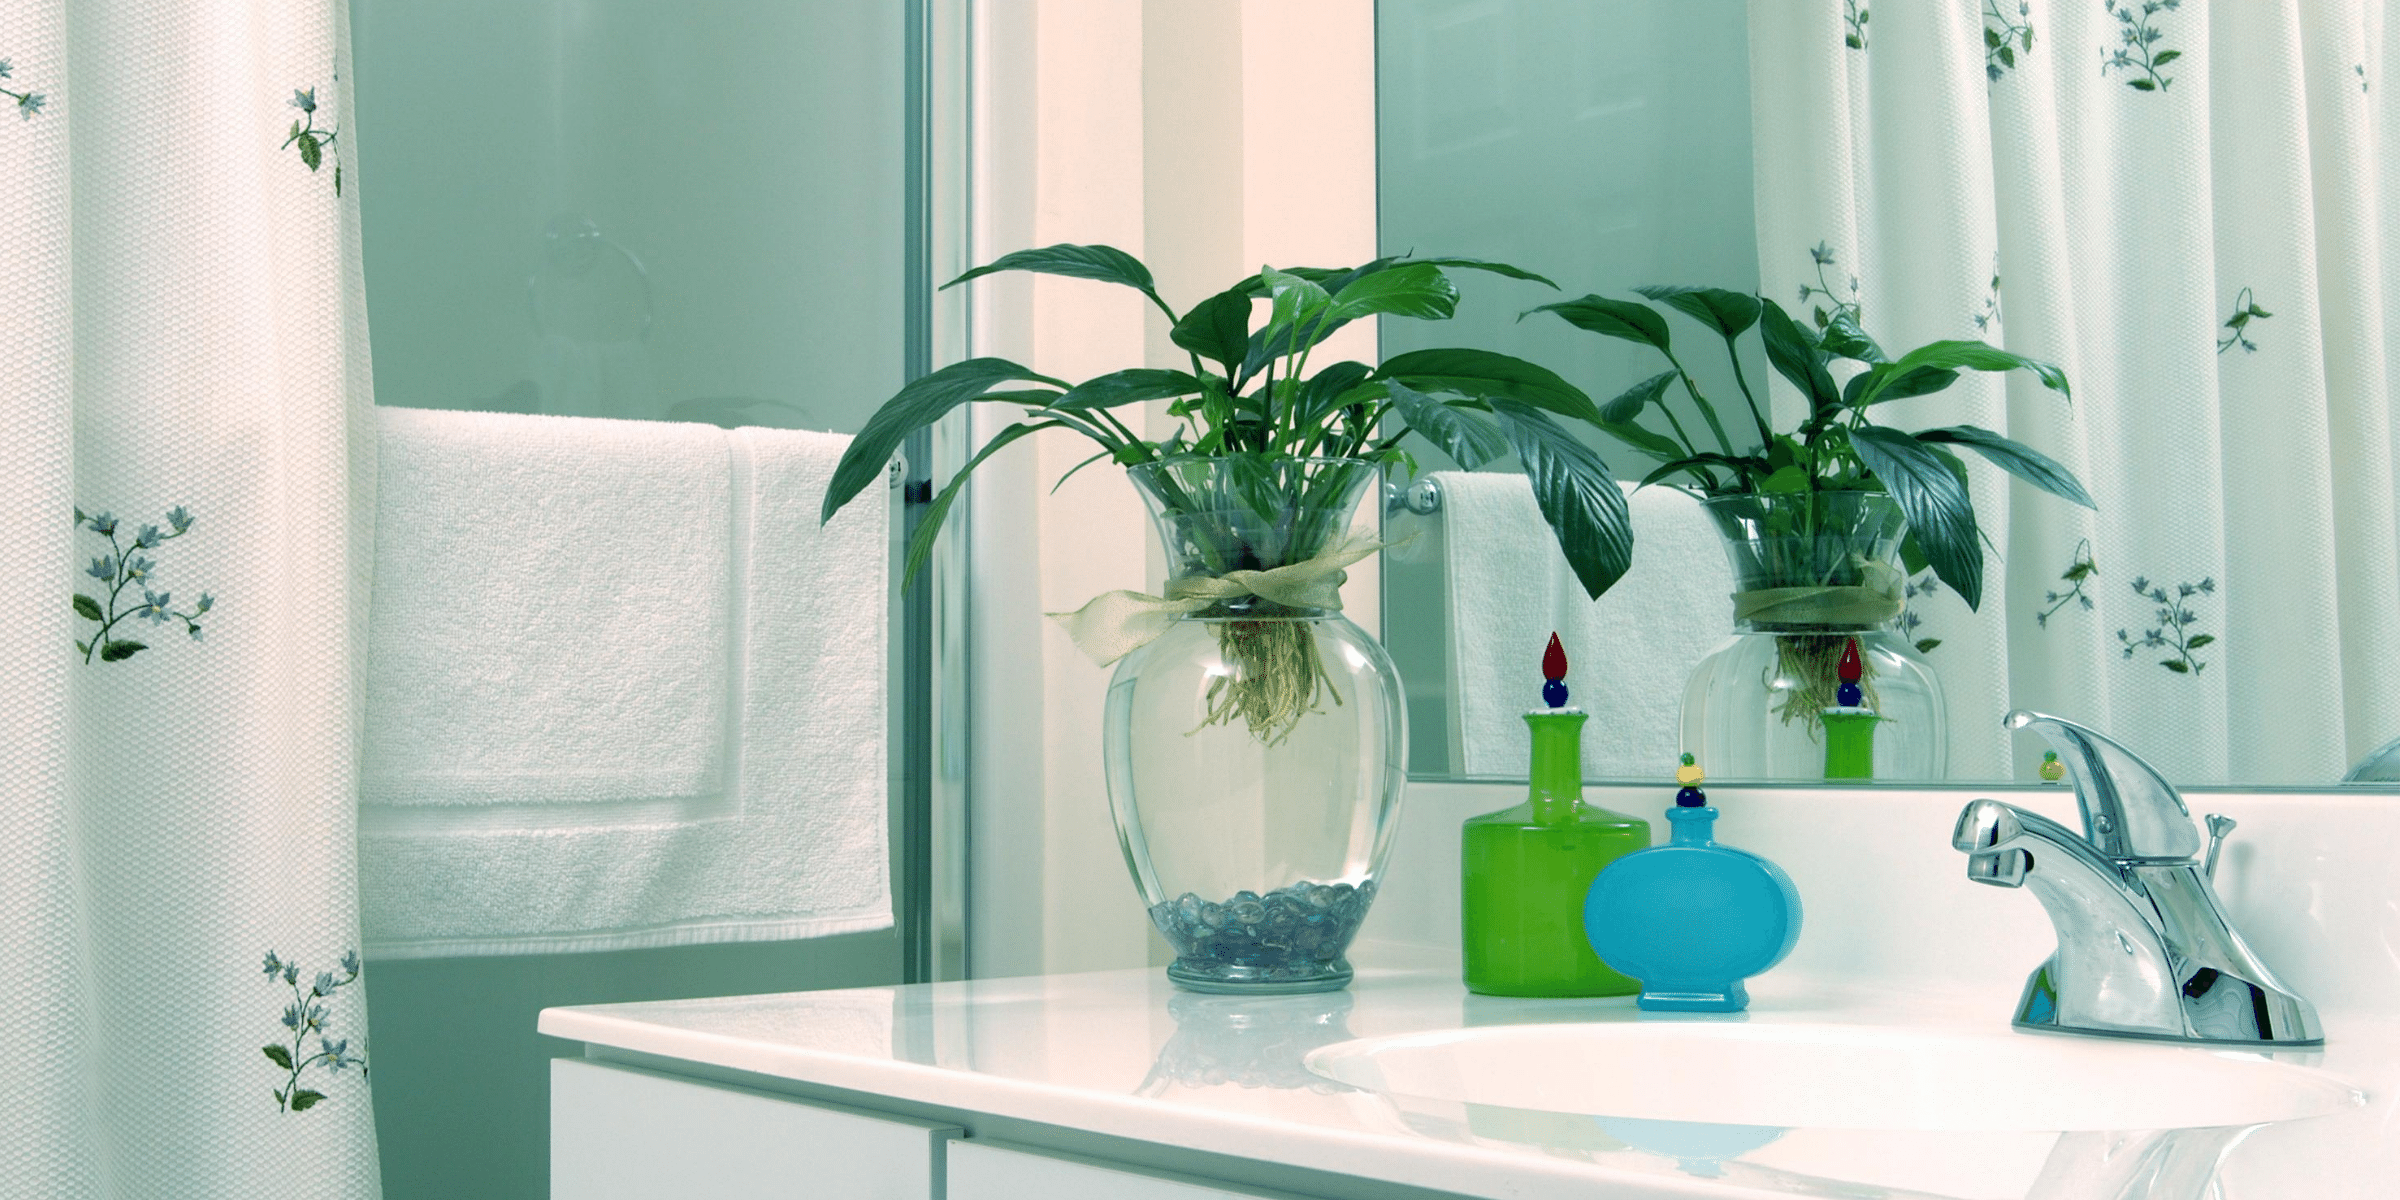 Add Colour and Boost Your Mood with Bathroom Plants